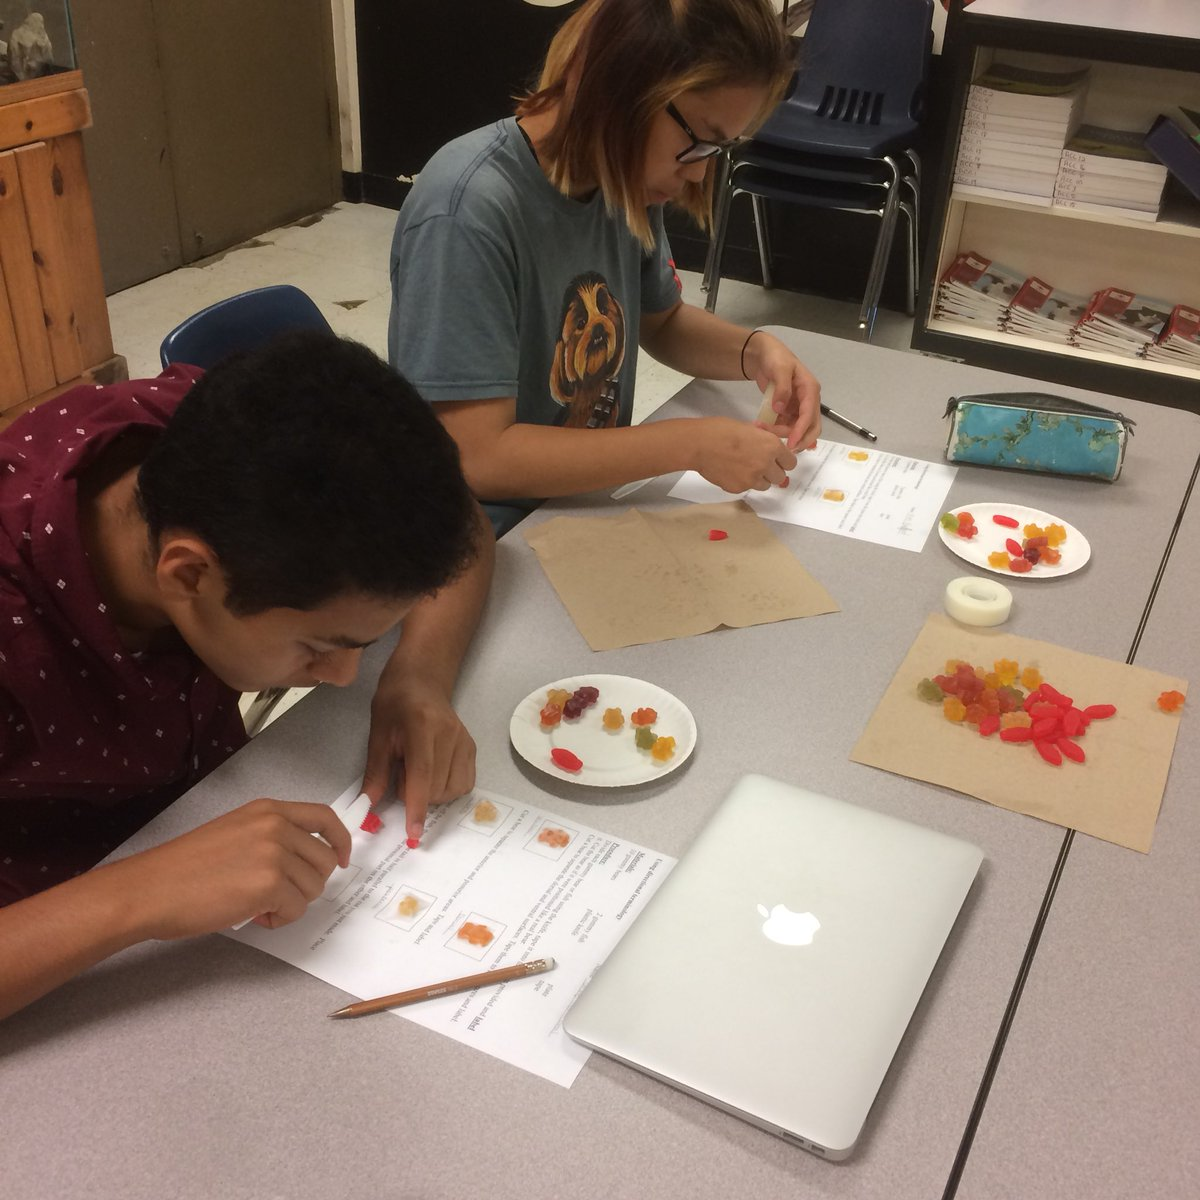 RT <a target='_blank' href='http://twitter.com/APS_AnimalSci'>@APS_AnimalSci</a>: Practicing directional terminology with gummy bears and Swedish fish. <a target='_blank' href='http://twitter.com/APSCareerCenter'>@APSCareerCenter</a> <a target='_blank' href='http://twitter.com/APS_CTAE'>@APS_CTAE</a> <a target='_blank' href='https://t.co/cN3HRyu2oI'>https://t.co/cN3HRyu2oI</a>